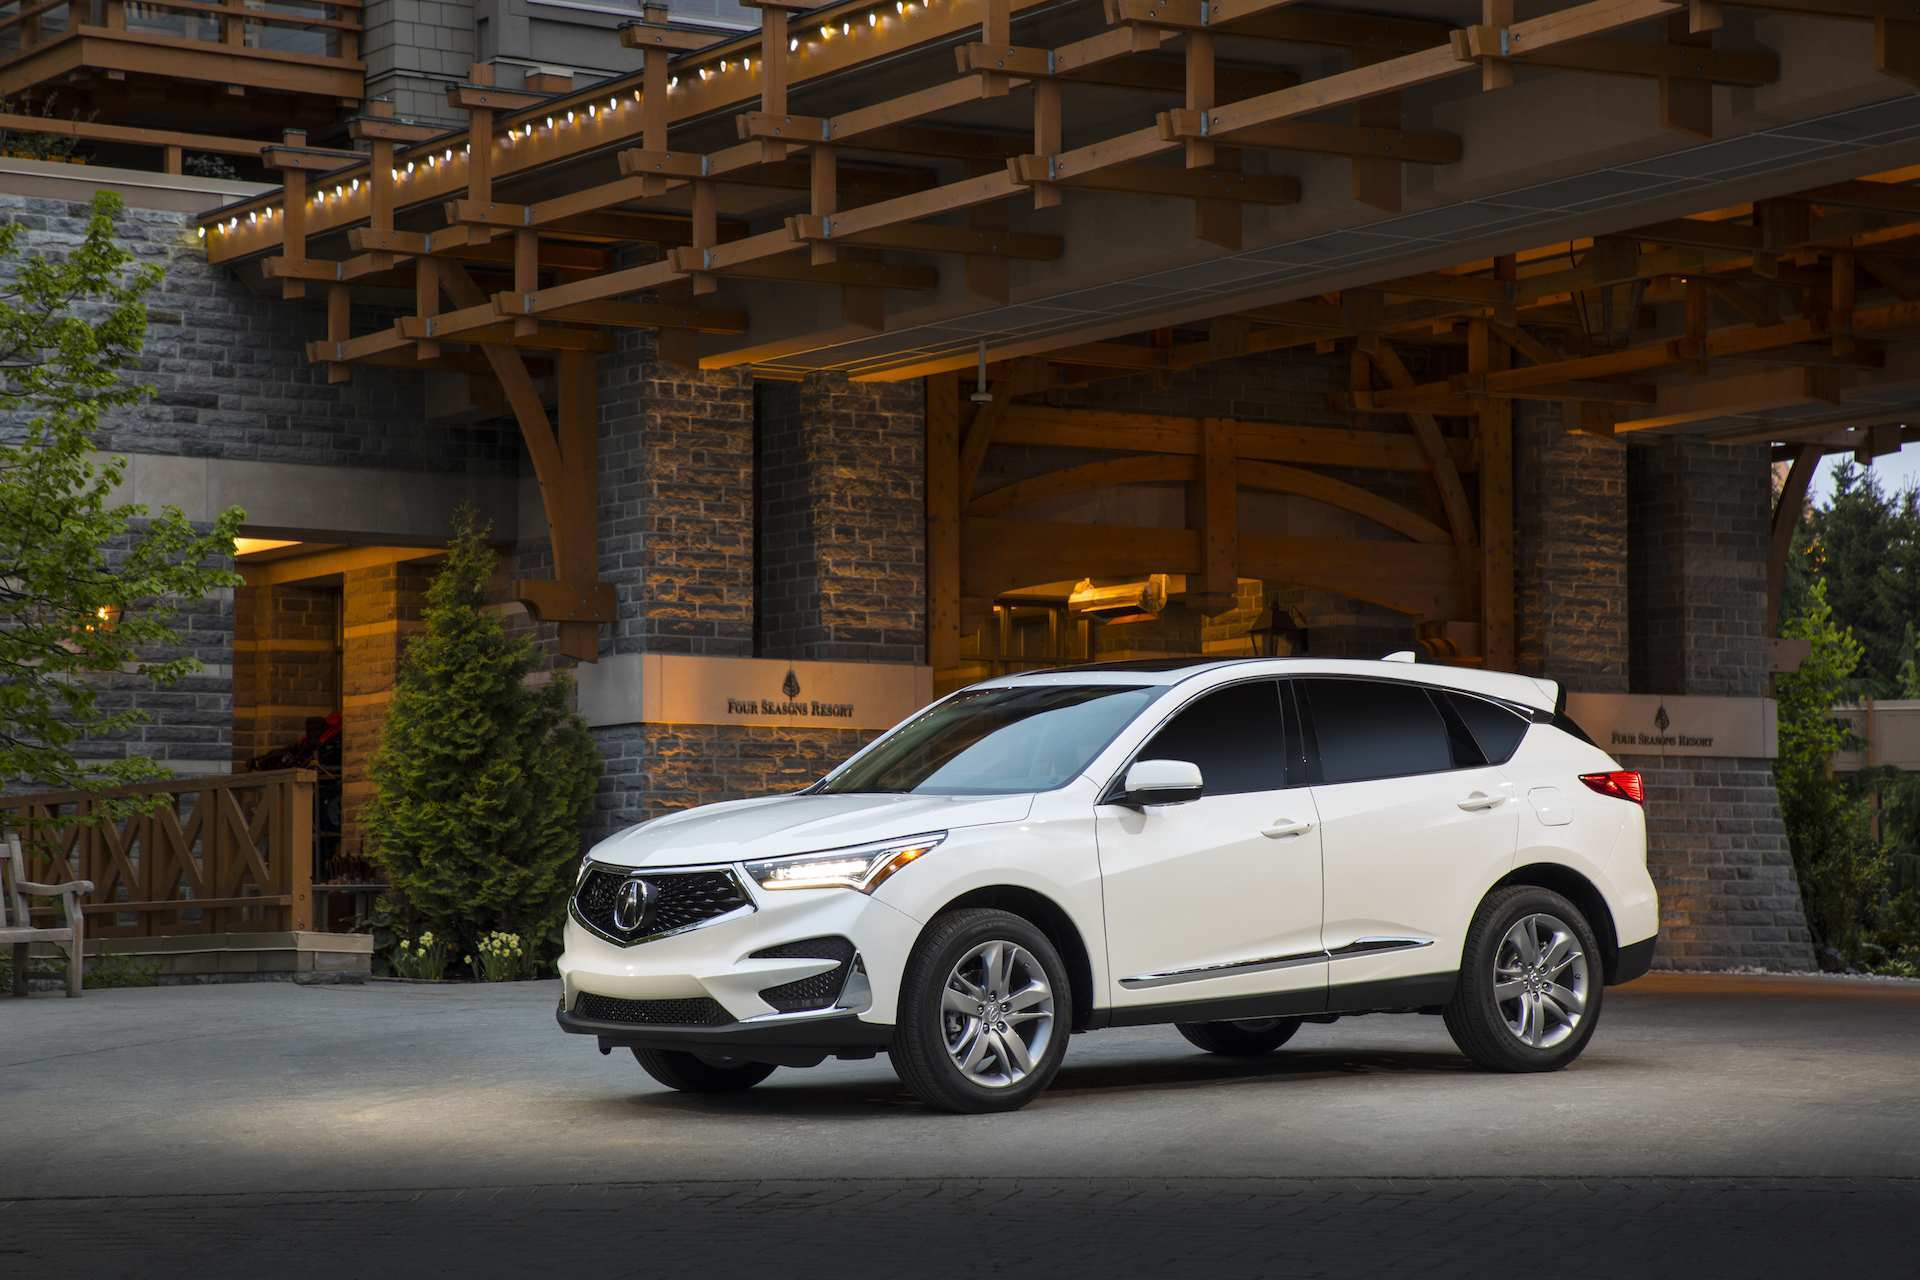 58 Gallery of When Is The 2020 Acura Rdx Coming Out Model with When Is The 2020 Acura Rdx Coming Out